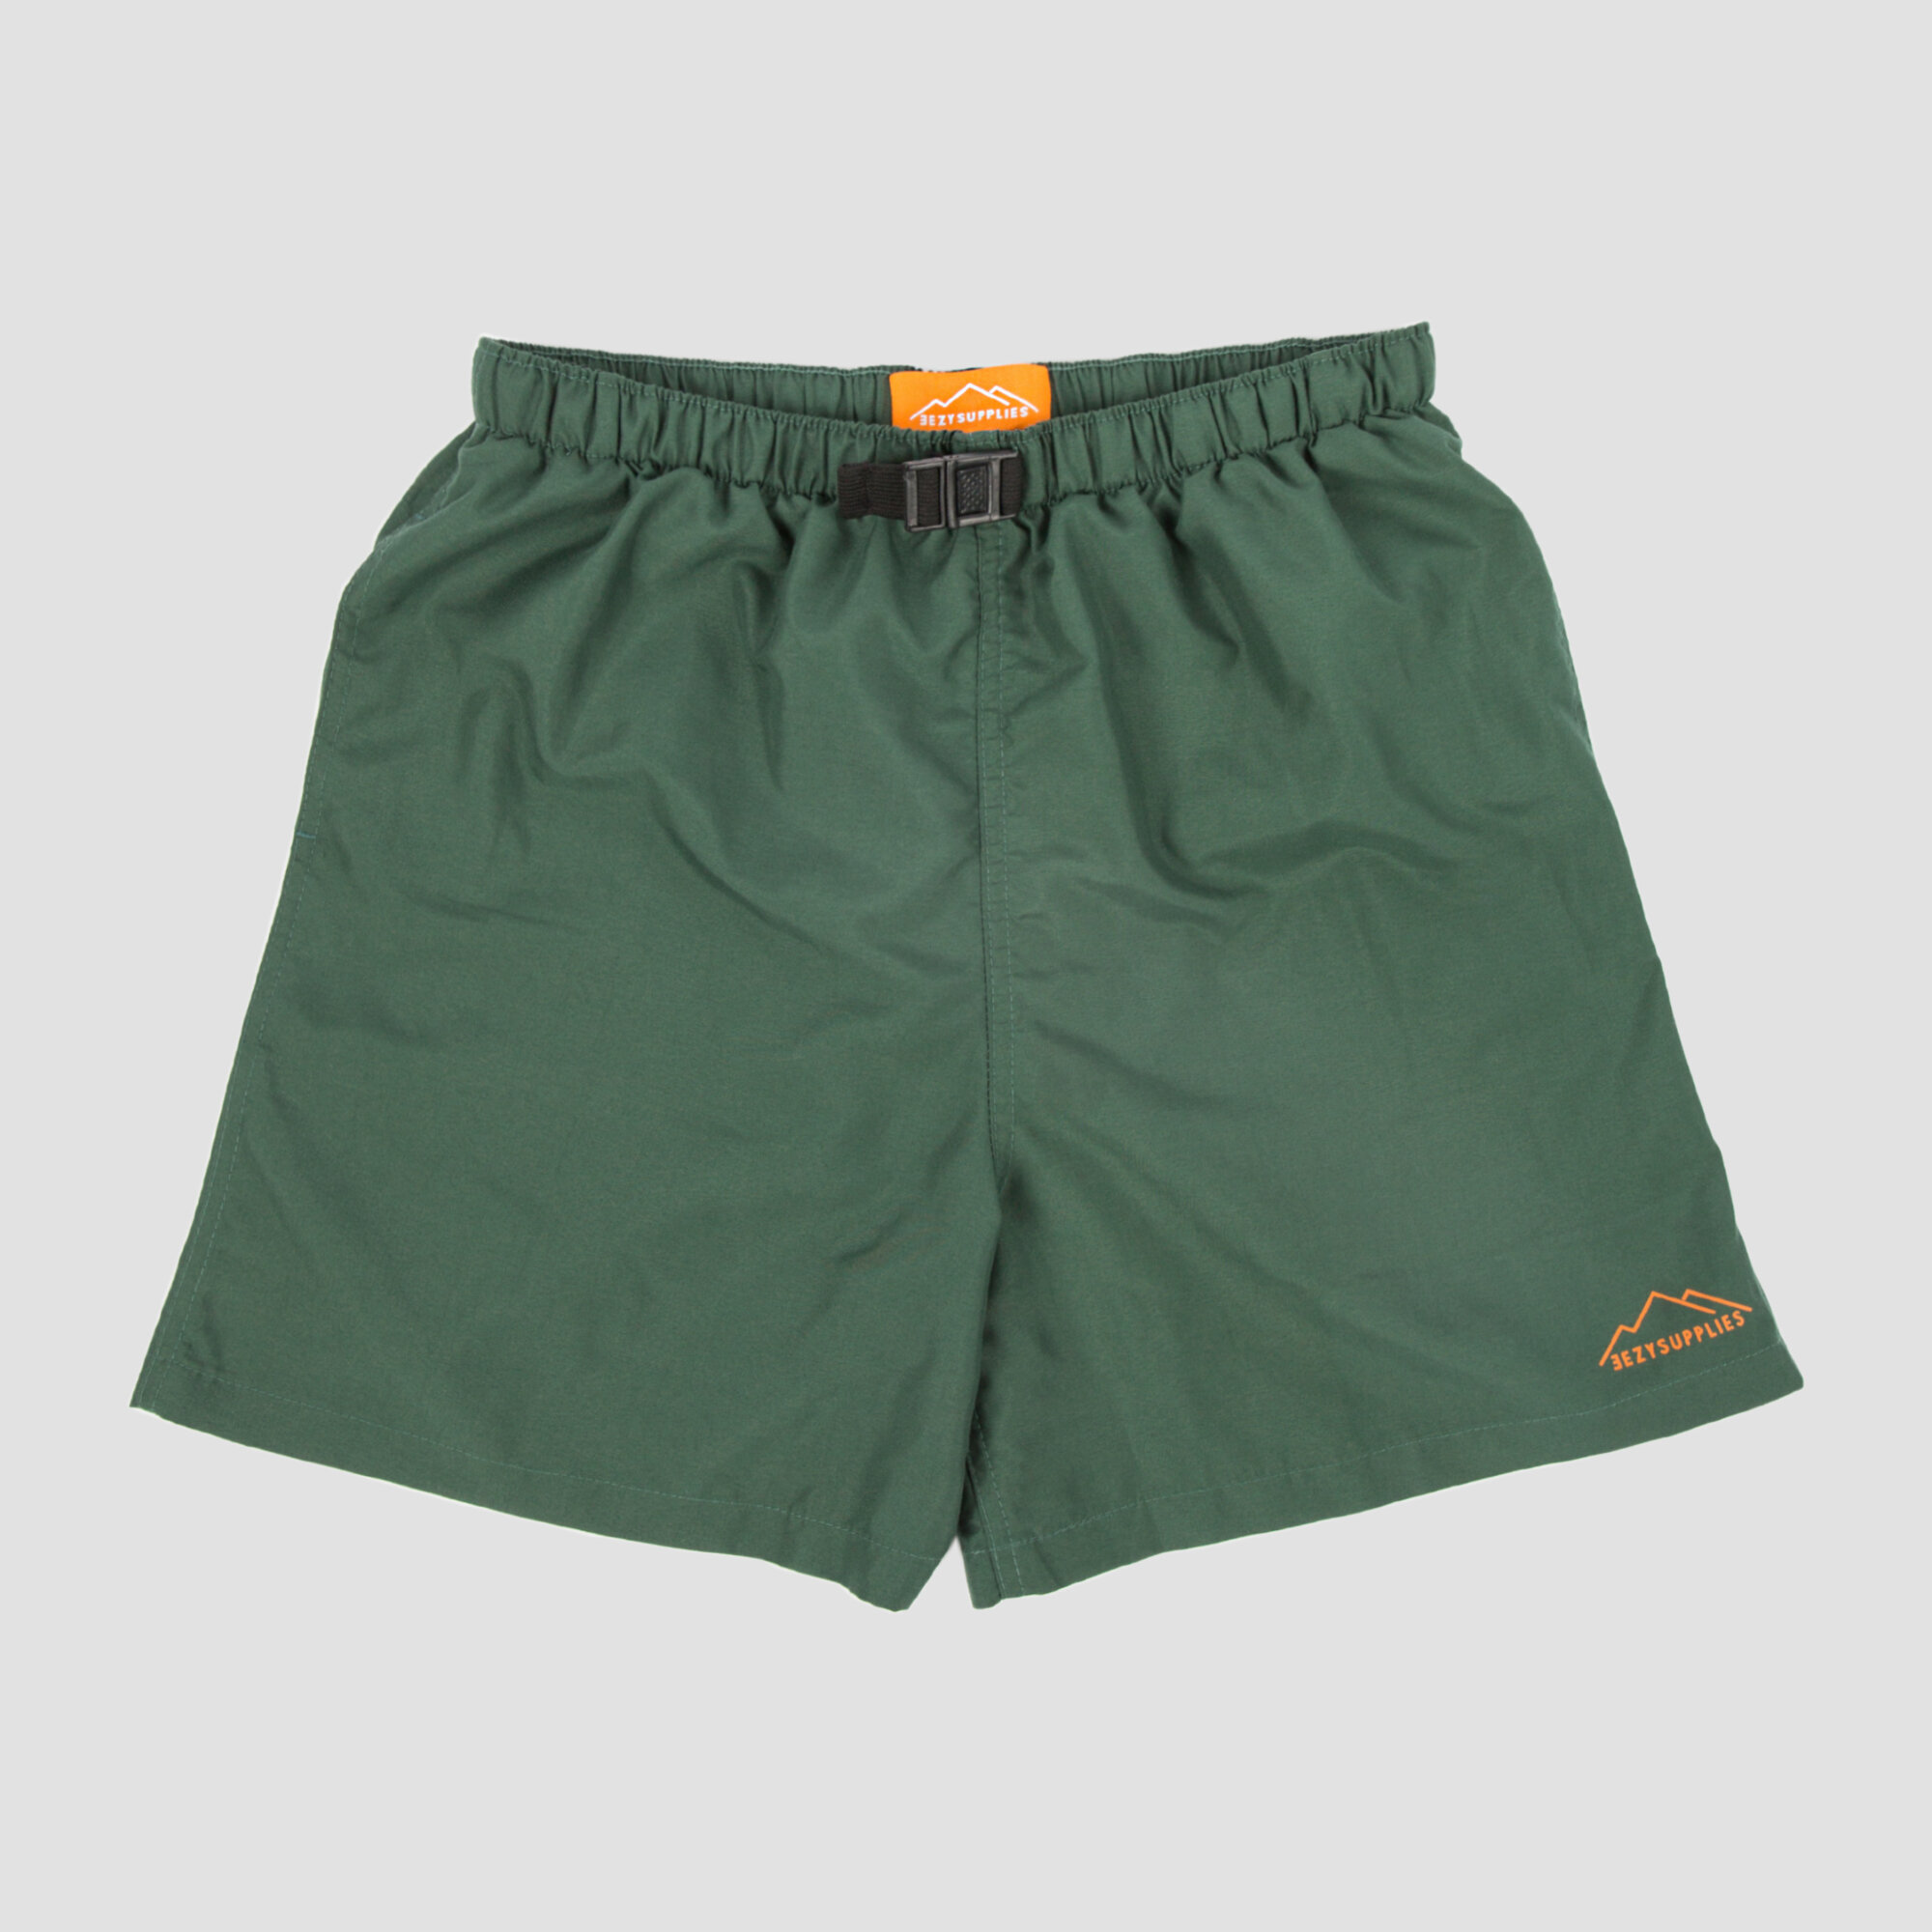 Pinnacle - Forest Green - $39.95